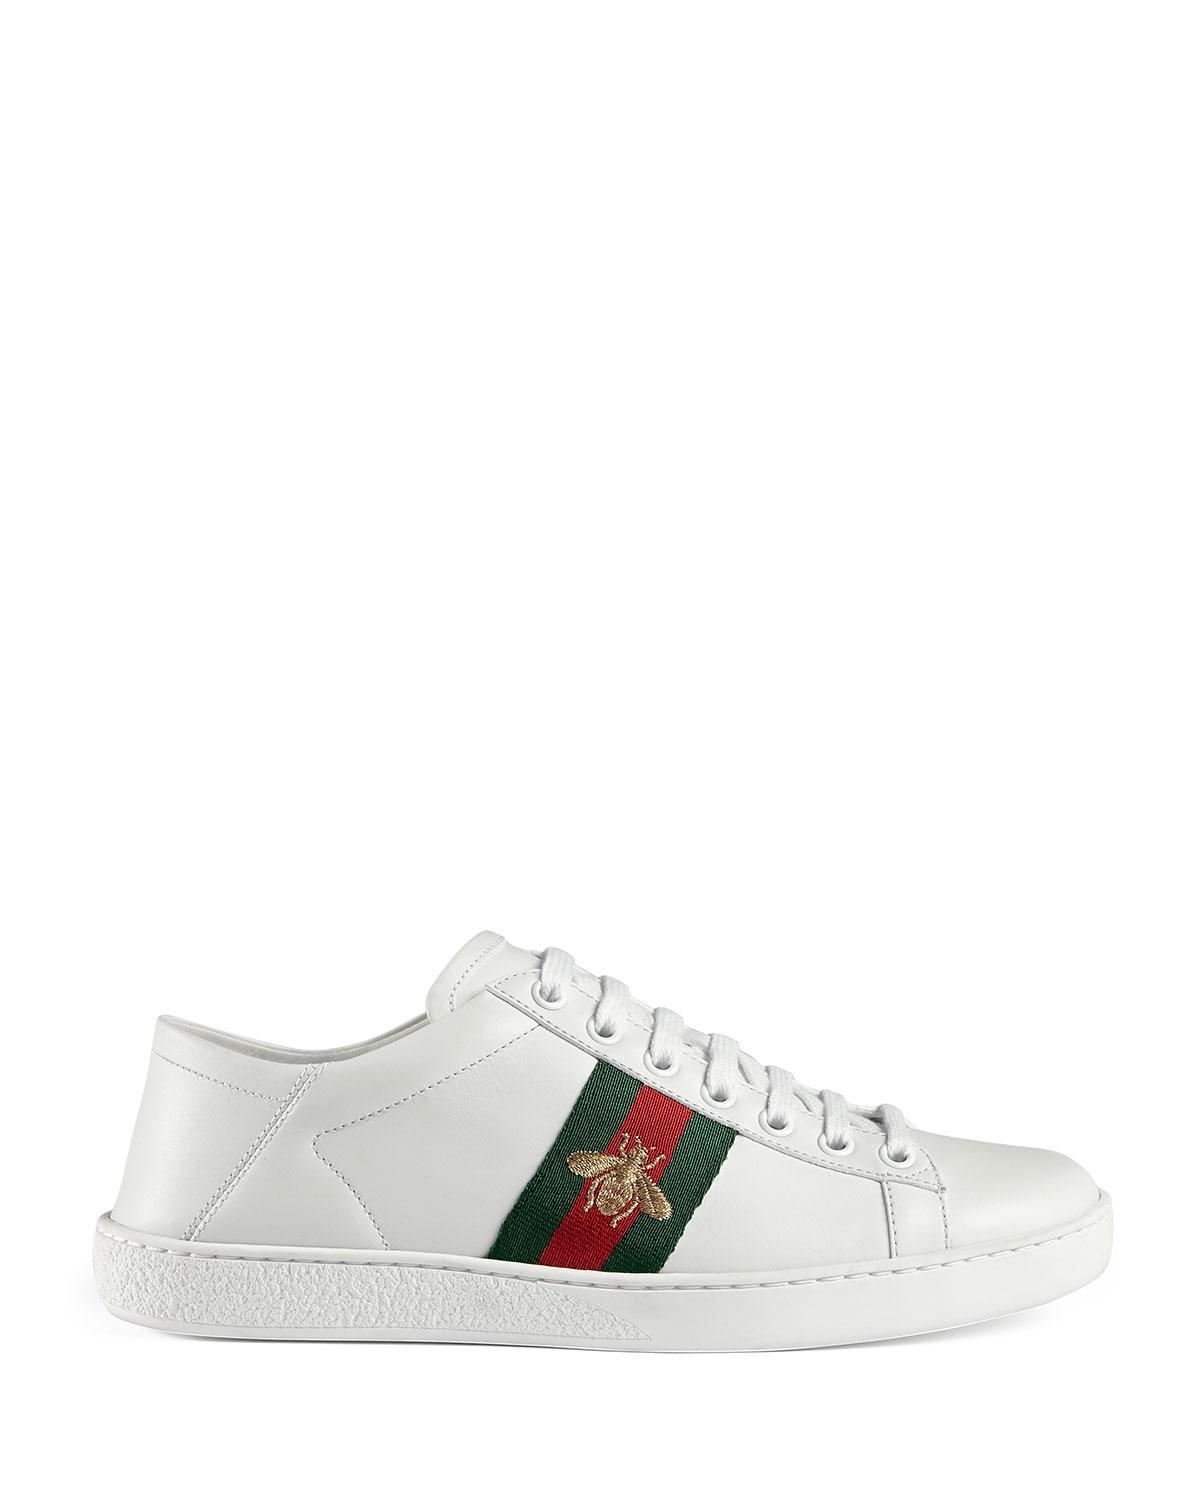 a94cddbee4c Lyst - Gucci Bee Web Sneakers in White